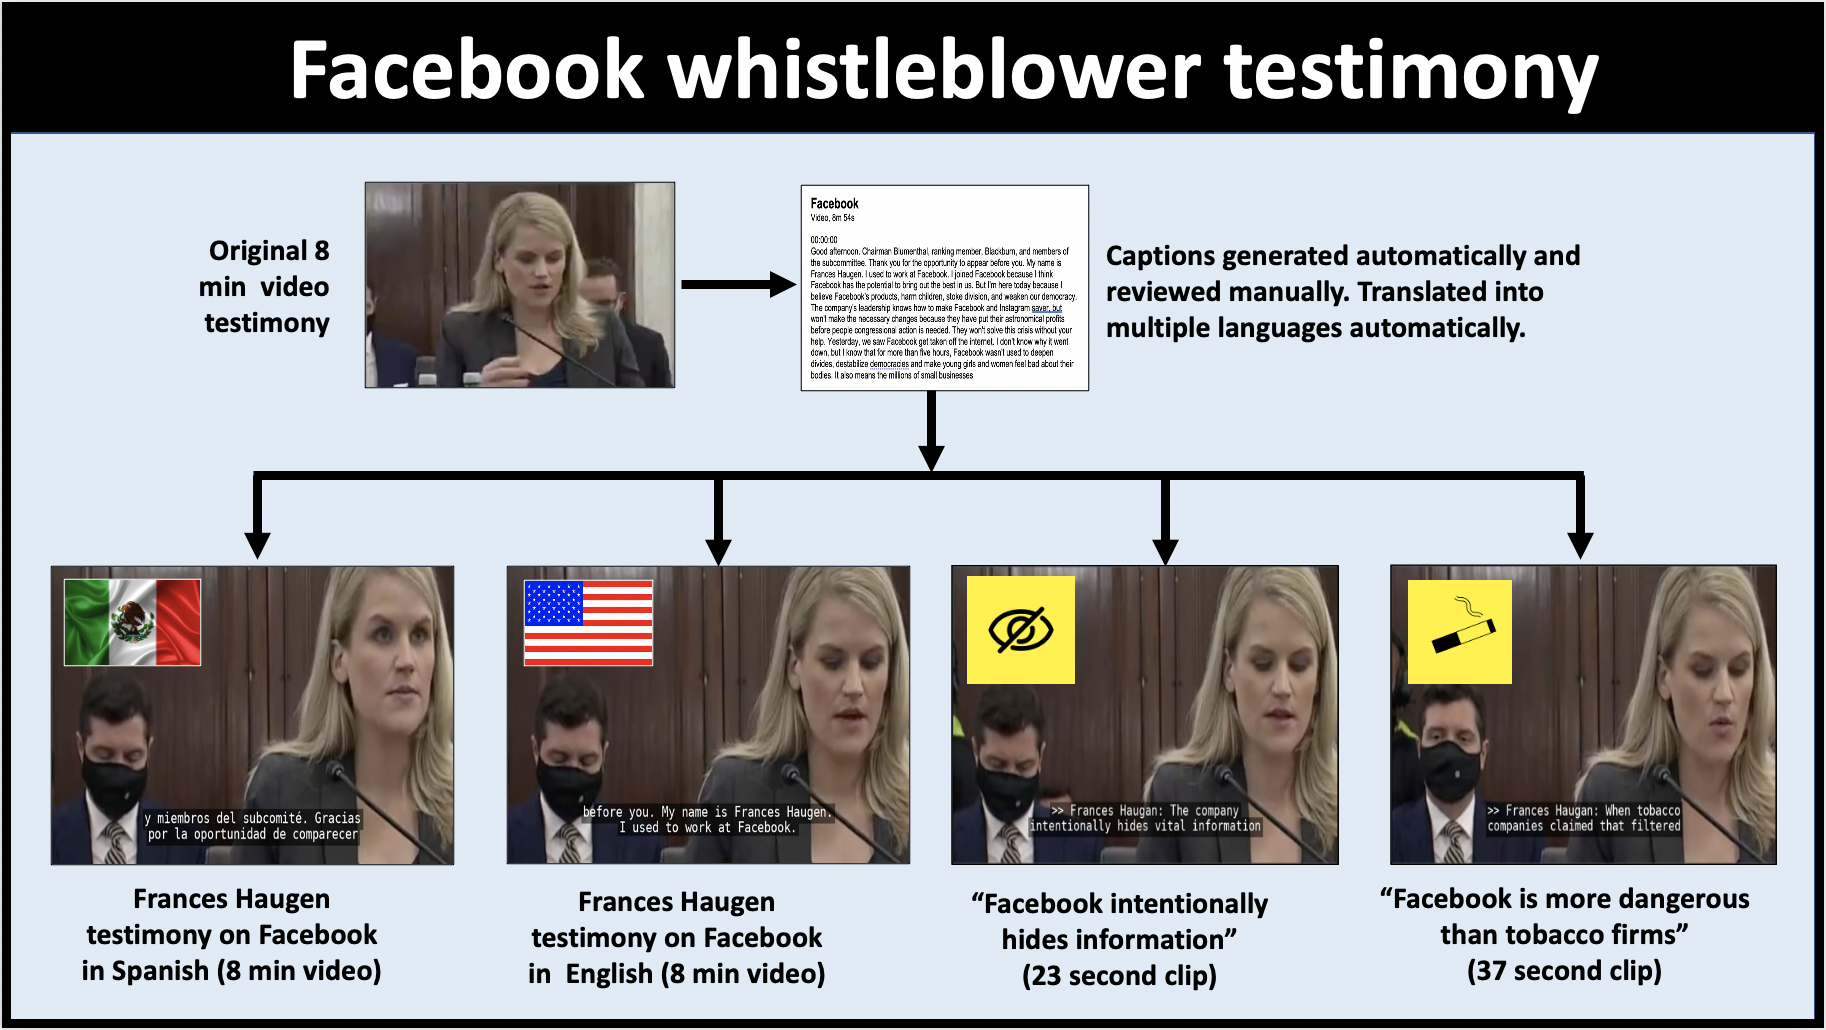 Make Facebook Whistleblower Testimony Video available to all audiences